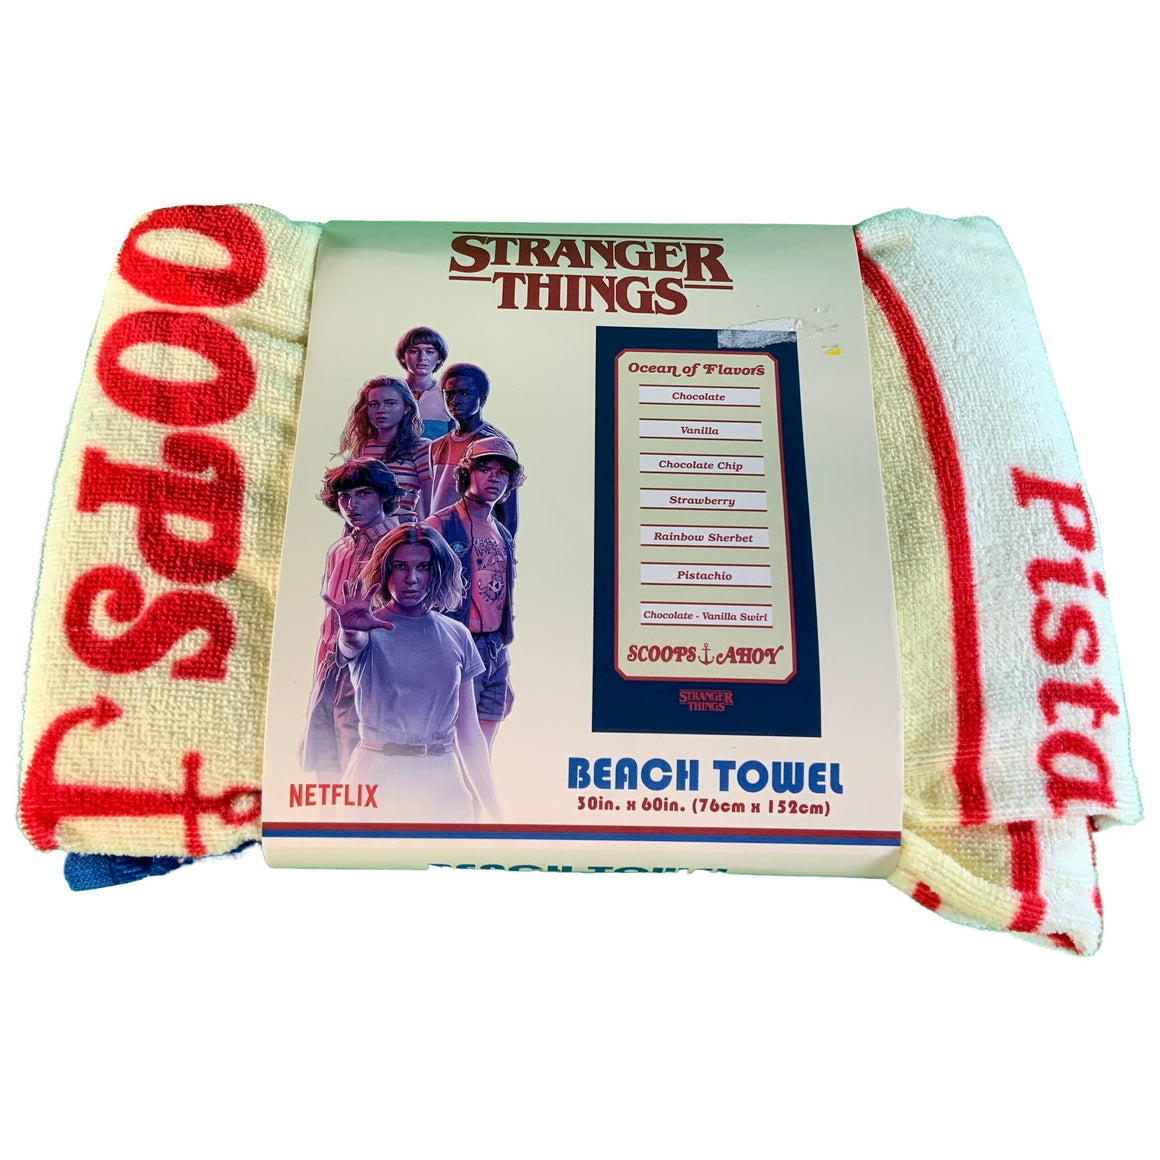 "Stranger Things Beach Towel 30"" X 60"" Scoopys Ahoy Menu Board Flavor 100% Cotton - Netflix"